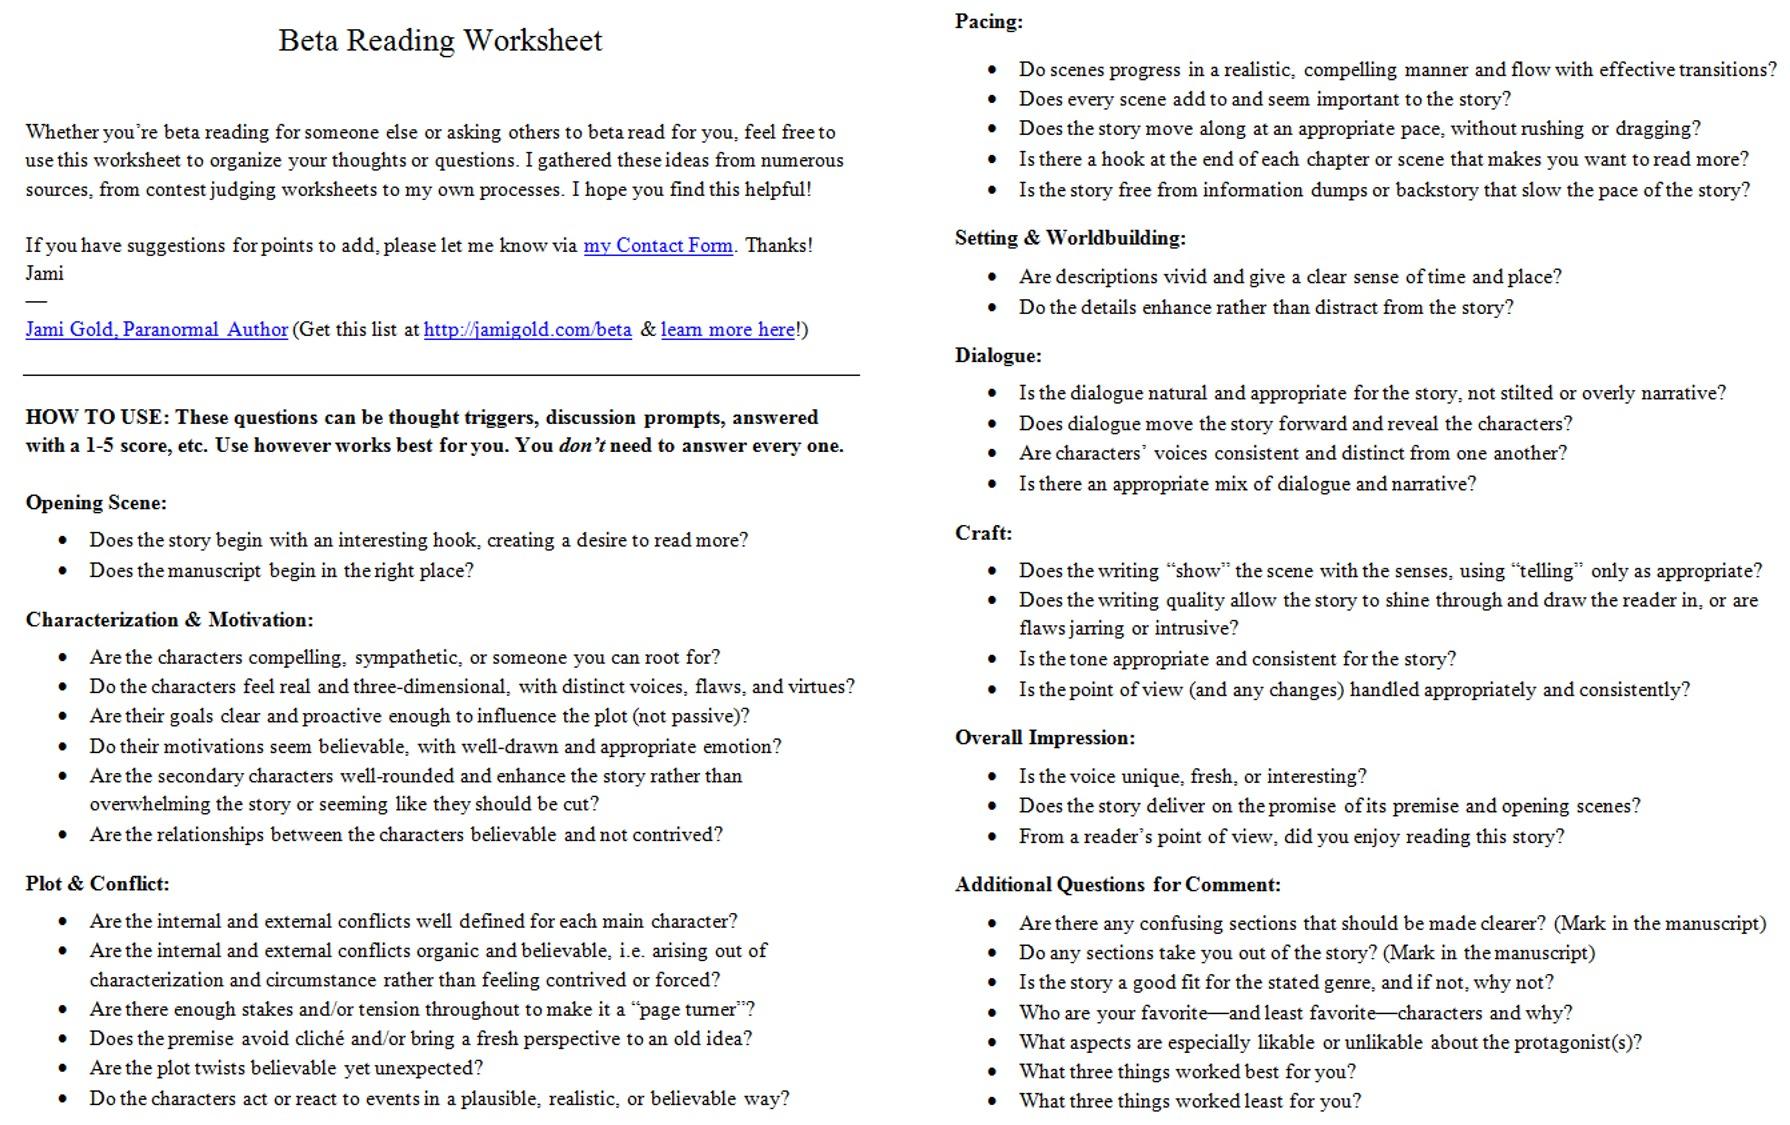 Weirdmailus  Splendid Worksheets For Writers  Jami Gold Paranormal Author With Engaging Screen Shot Of The Twopage Beta Reading Worksheet With Attractive St Grade Addition Worksheets Also Onomatopoeia Worksheets In Addition Preschool Worksheet And Letter X Worksheets As Well As Note Taking Worksheet Electricity Additionally Volume And Surface Area Worksheets From Jamigoldcom With Weirdmailus  Engaging Worksheets For Writers  Jami Gold Paranormal Author With Attractive Screen Shot Of The Twopage Beta Reading Worksheet And Splendid St Grade Addition Worksheets Also Onomatopoeia Worksheets In Addition Preschool Worksheet From Jamigoldcom